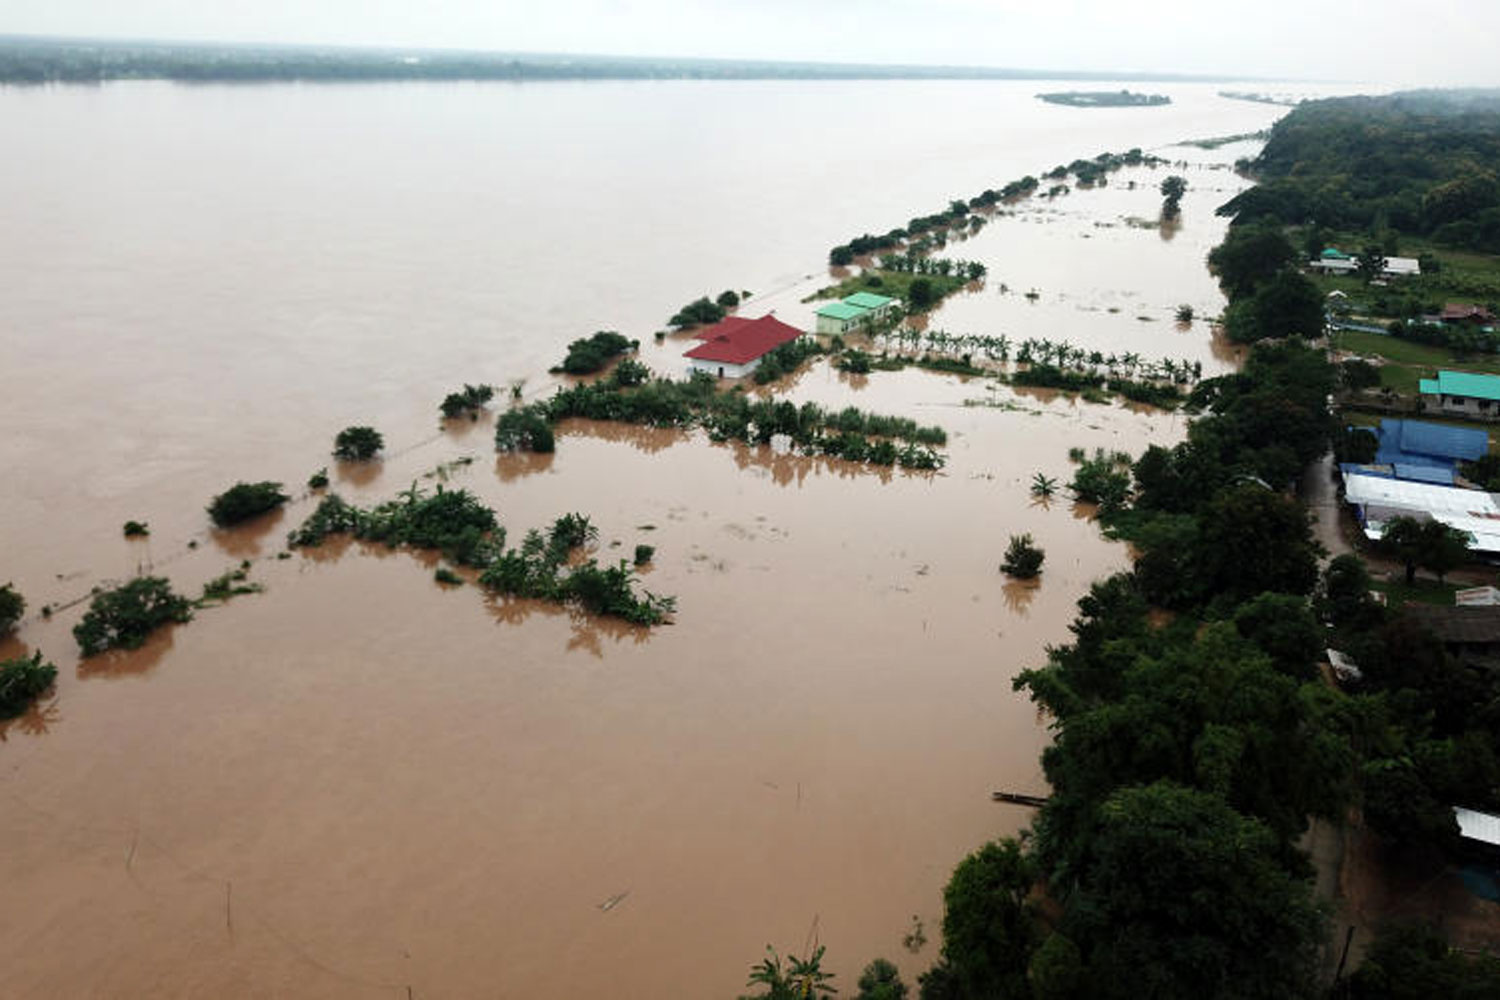 River communities in Nakhon Phanom's Muang district are inundated after the Mekong River bursts its banks in the wake of heavy rainfall in July last year. (Photo by Pattanapong Sripiachai)